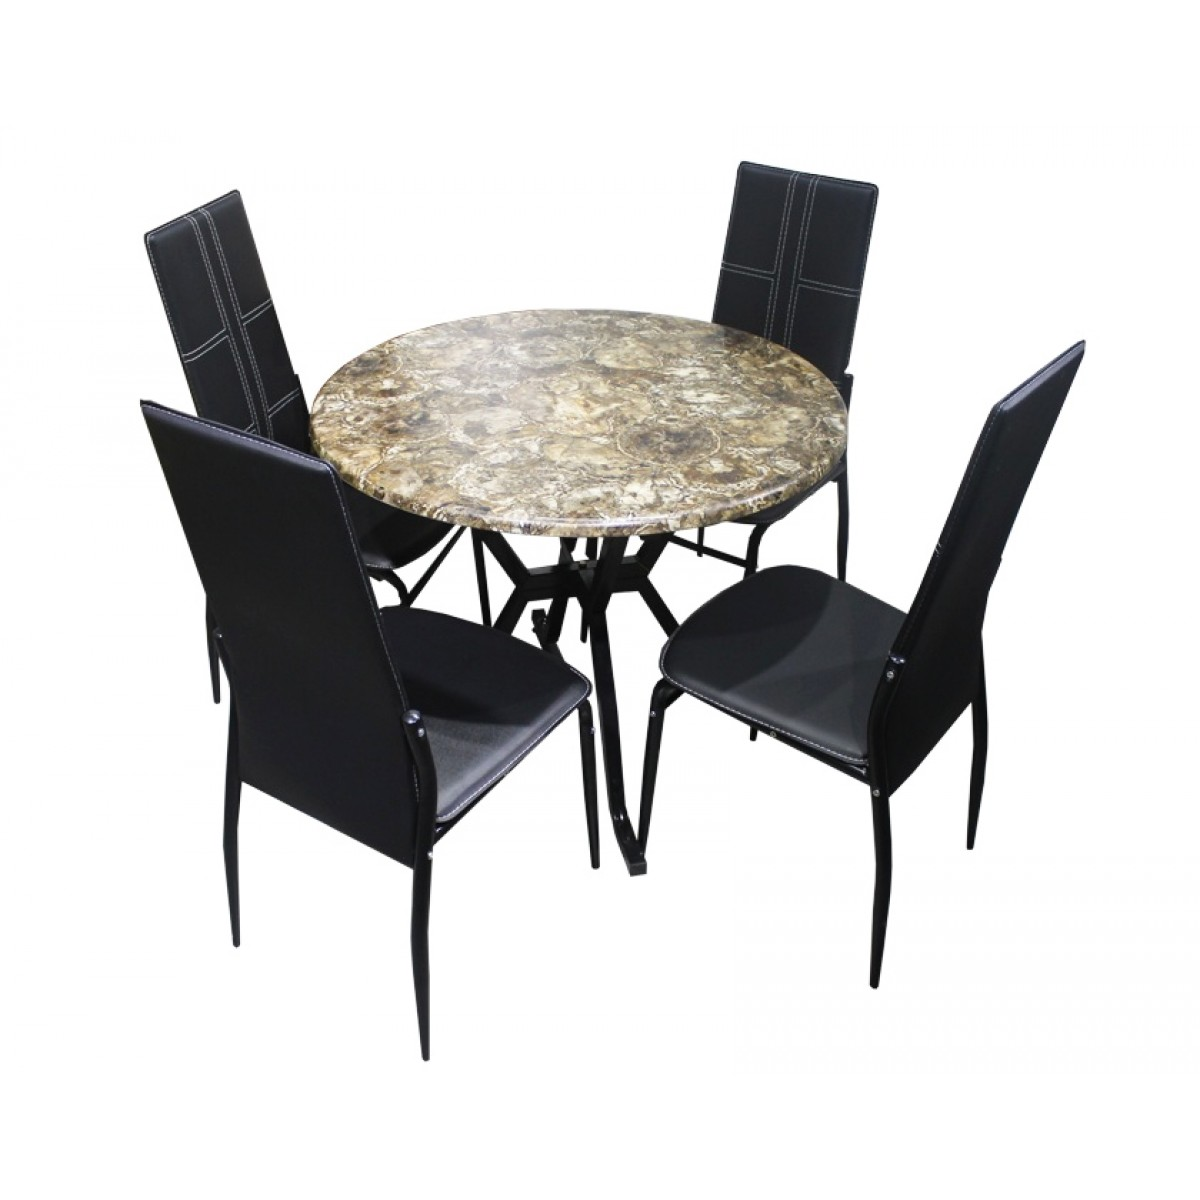 Habitat Table À Manger dining room set of 4 chairs